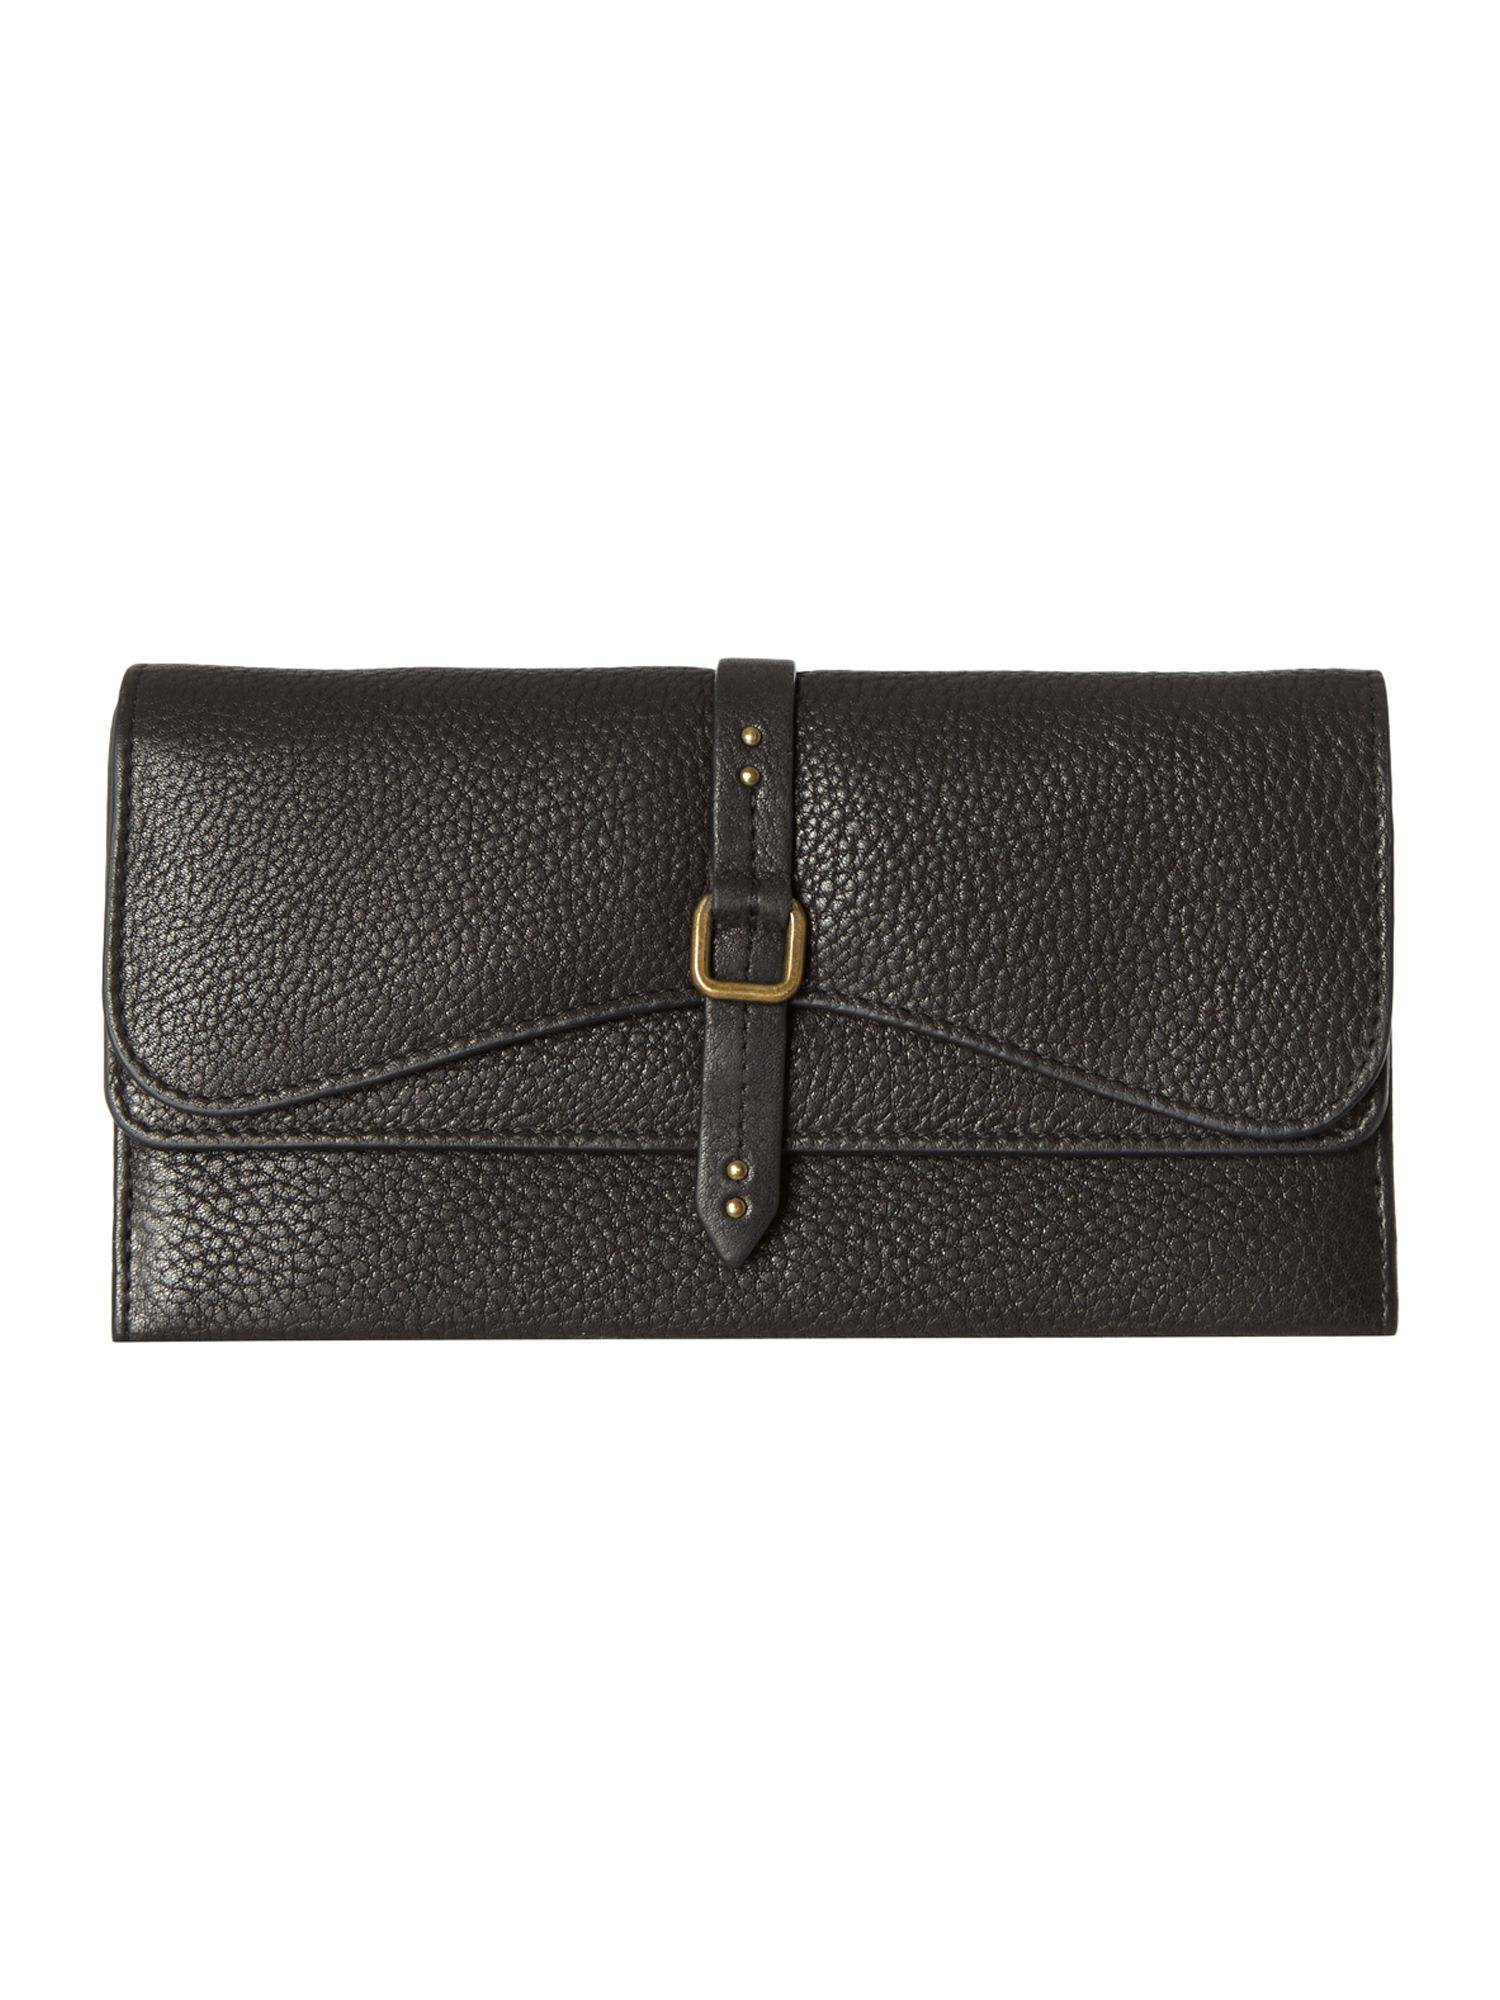 Grosvenor black large flapover matinee purse